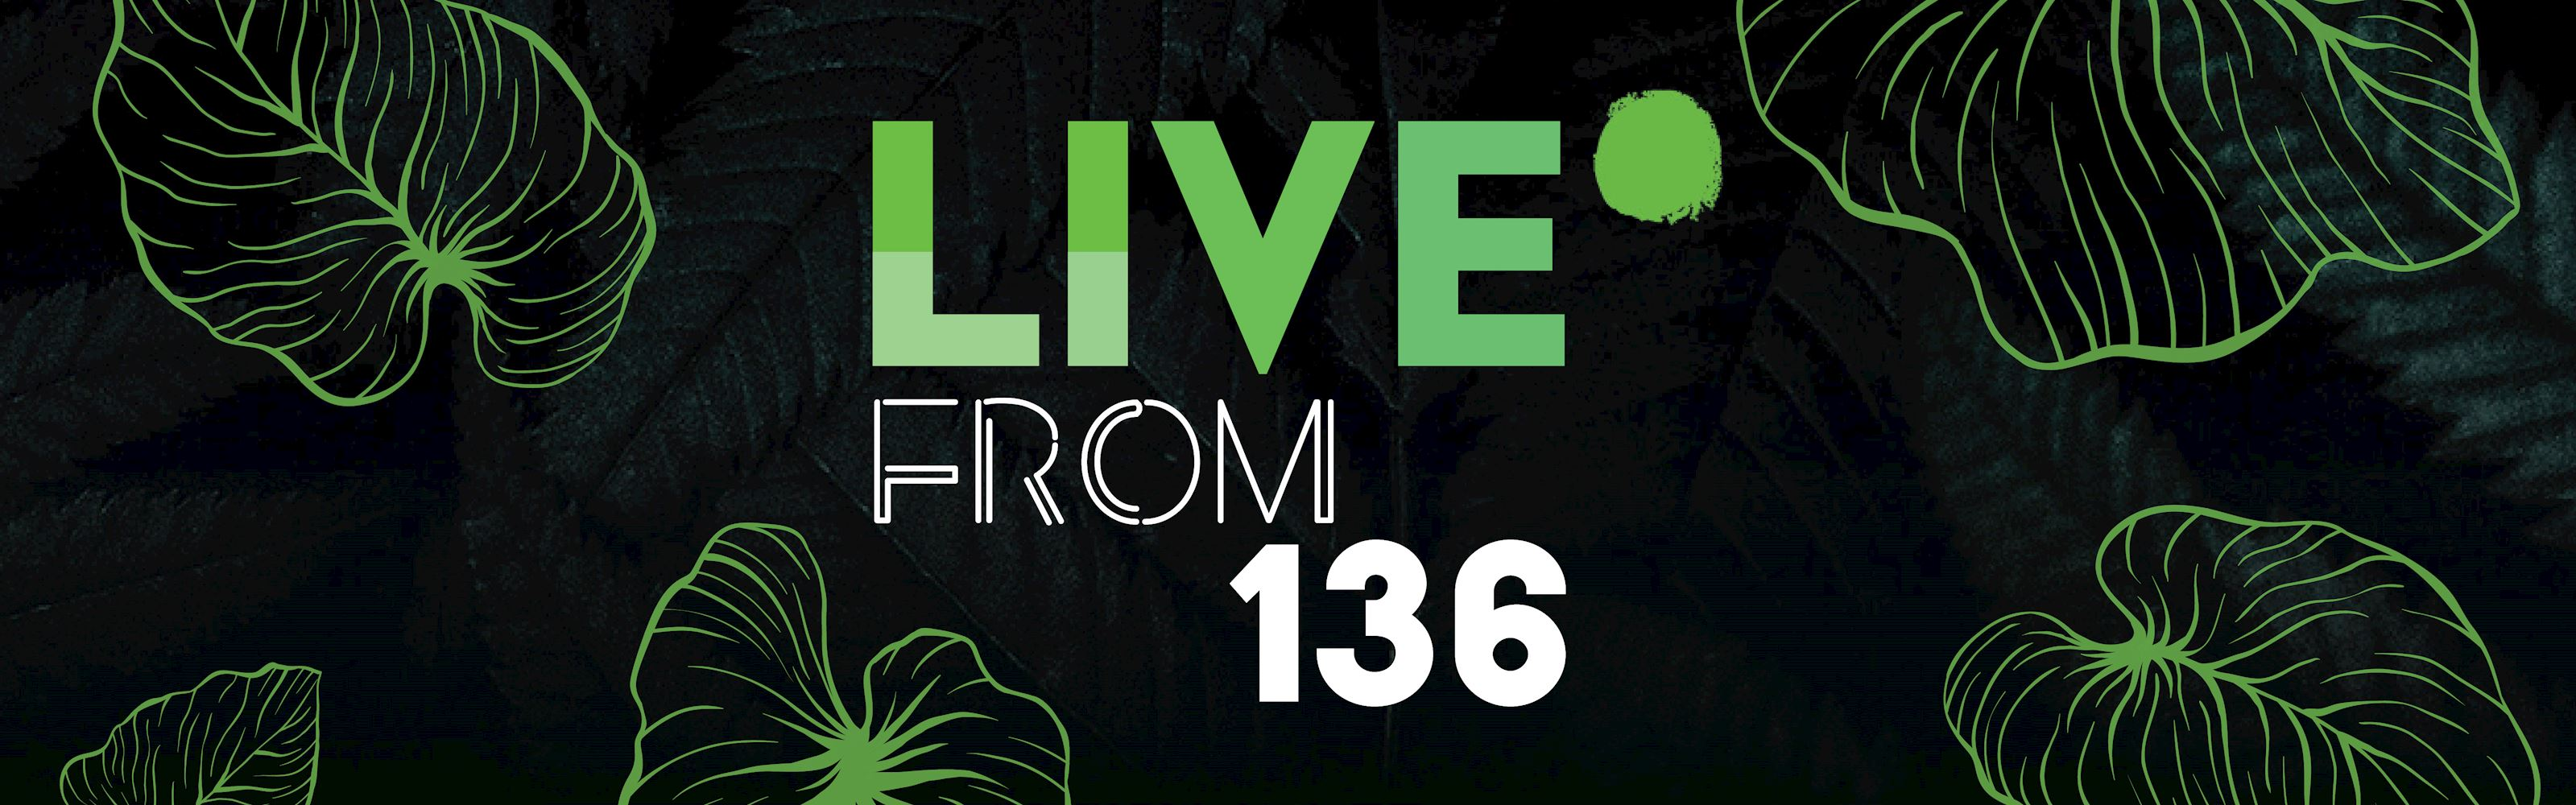 Live from 136 logo